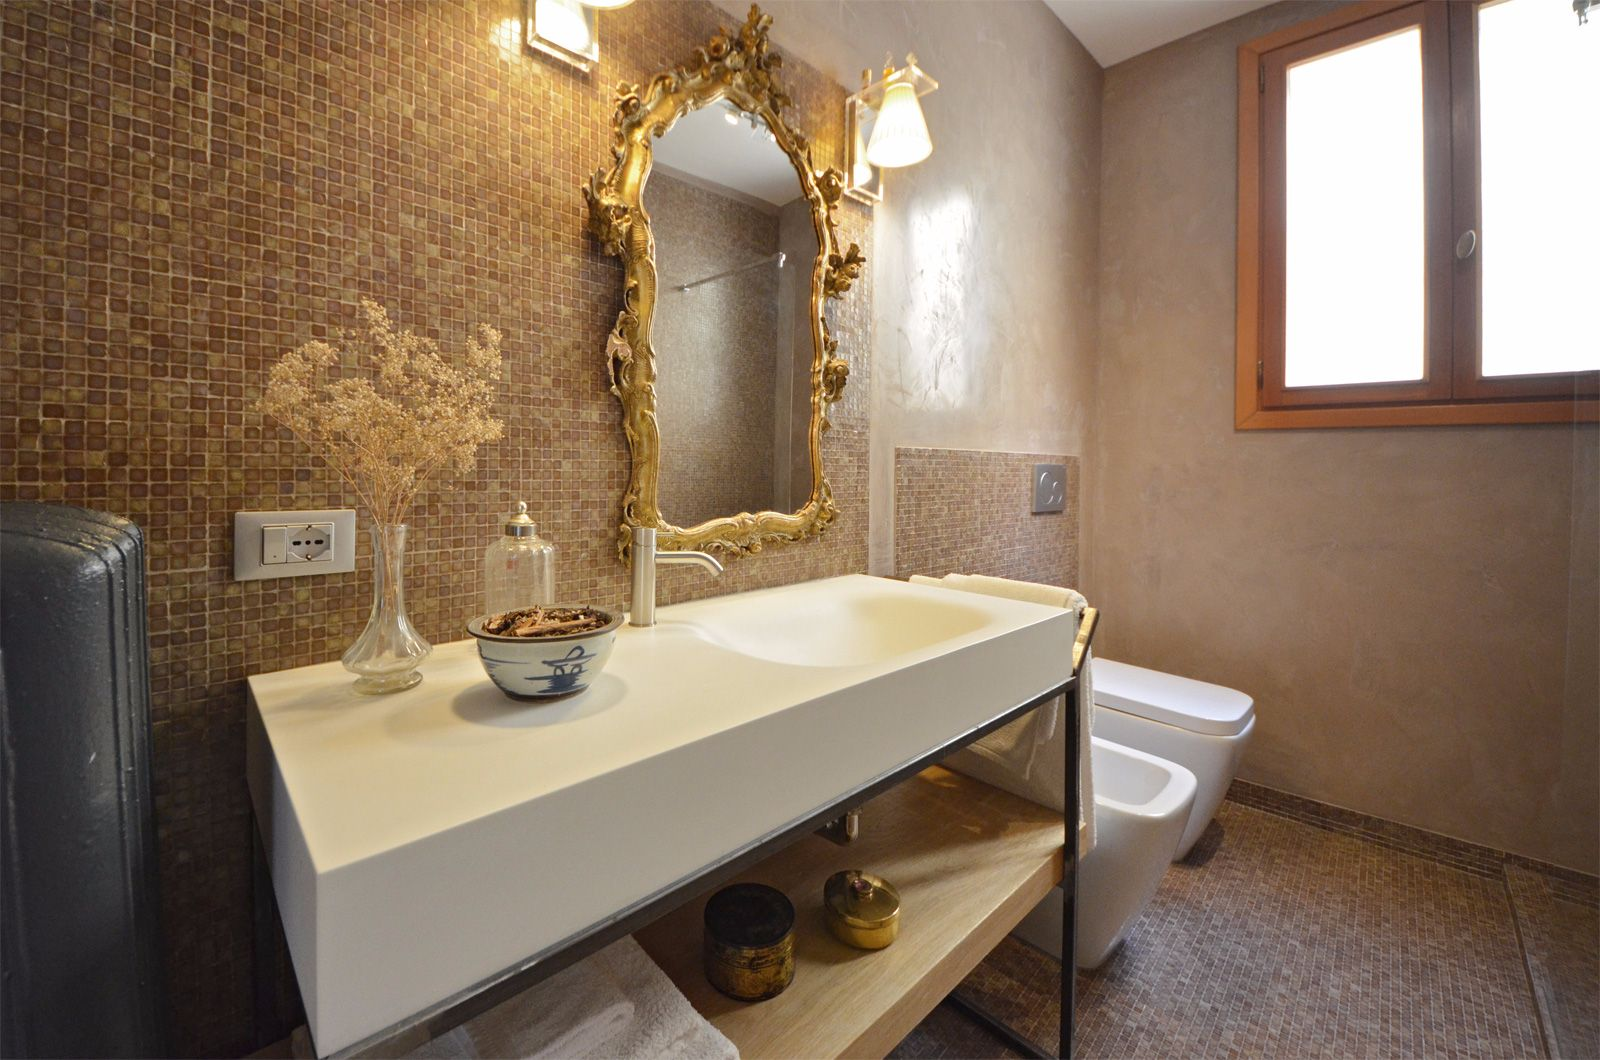 brand new bathroom with elegant mosaic tiles and designer vanities